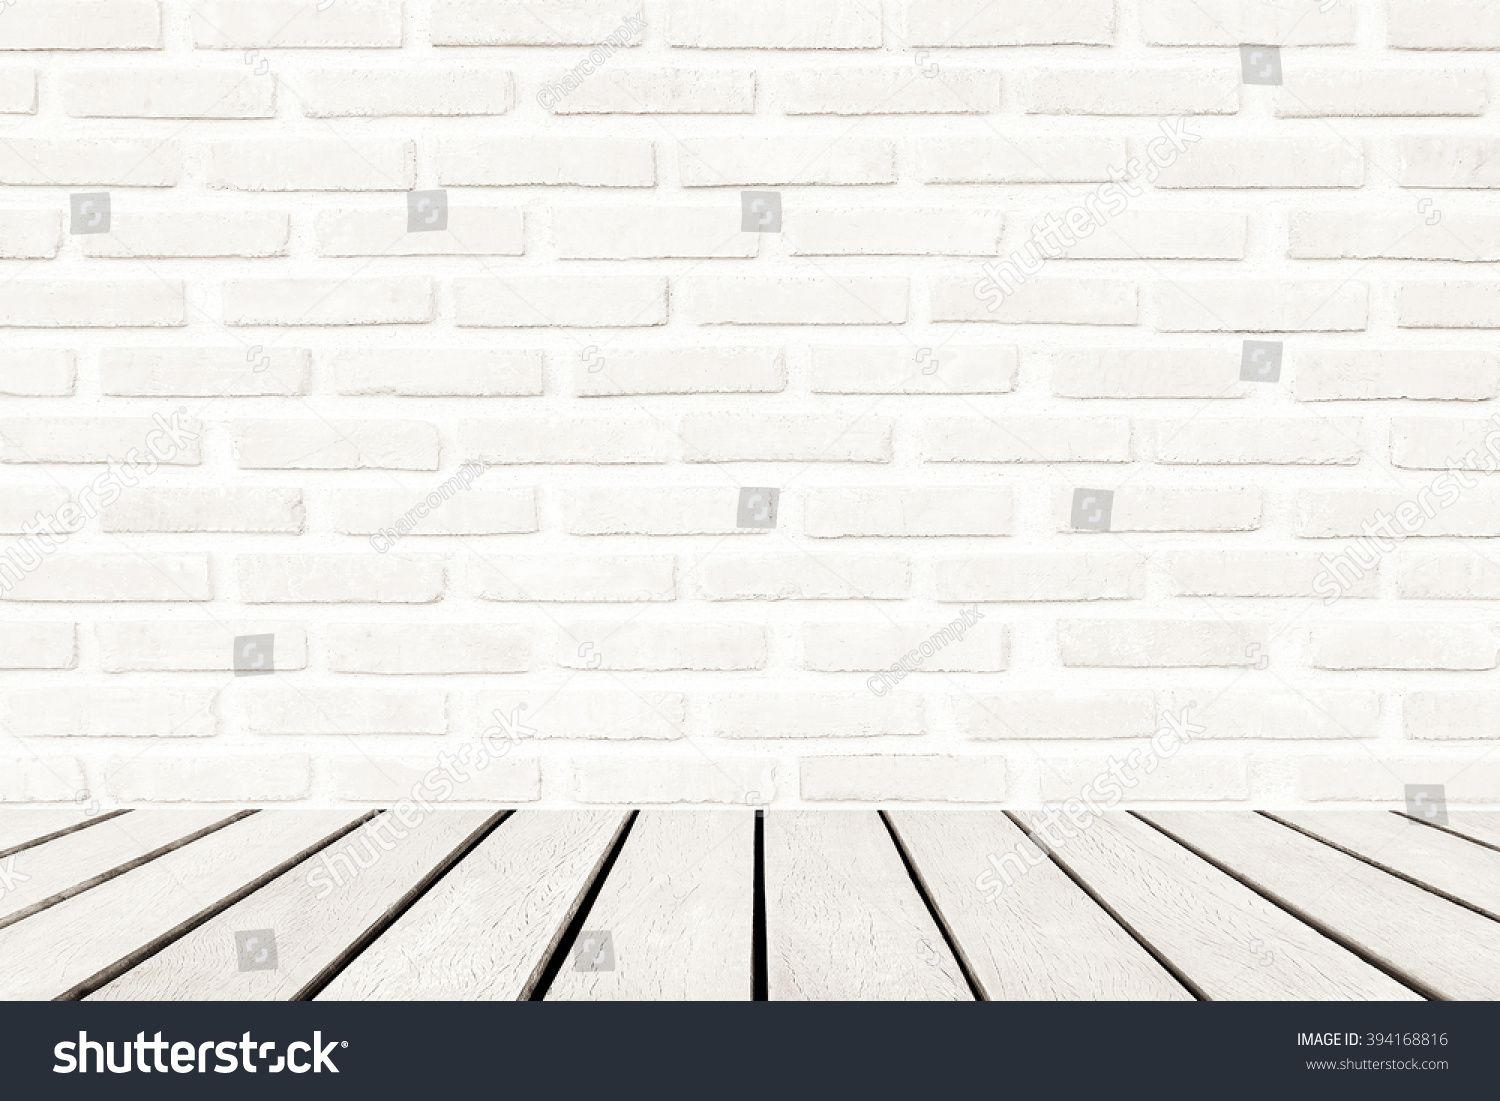 Wood Floor White Brick Wall Interiors Stock Photo - White brick interiors